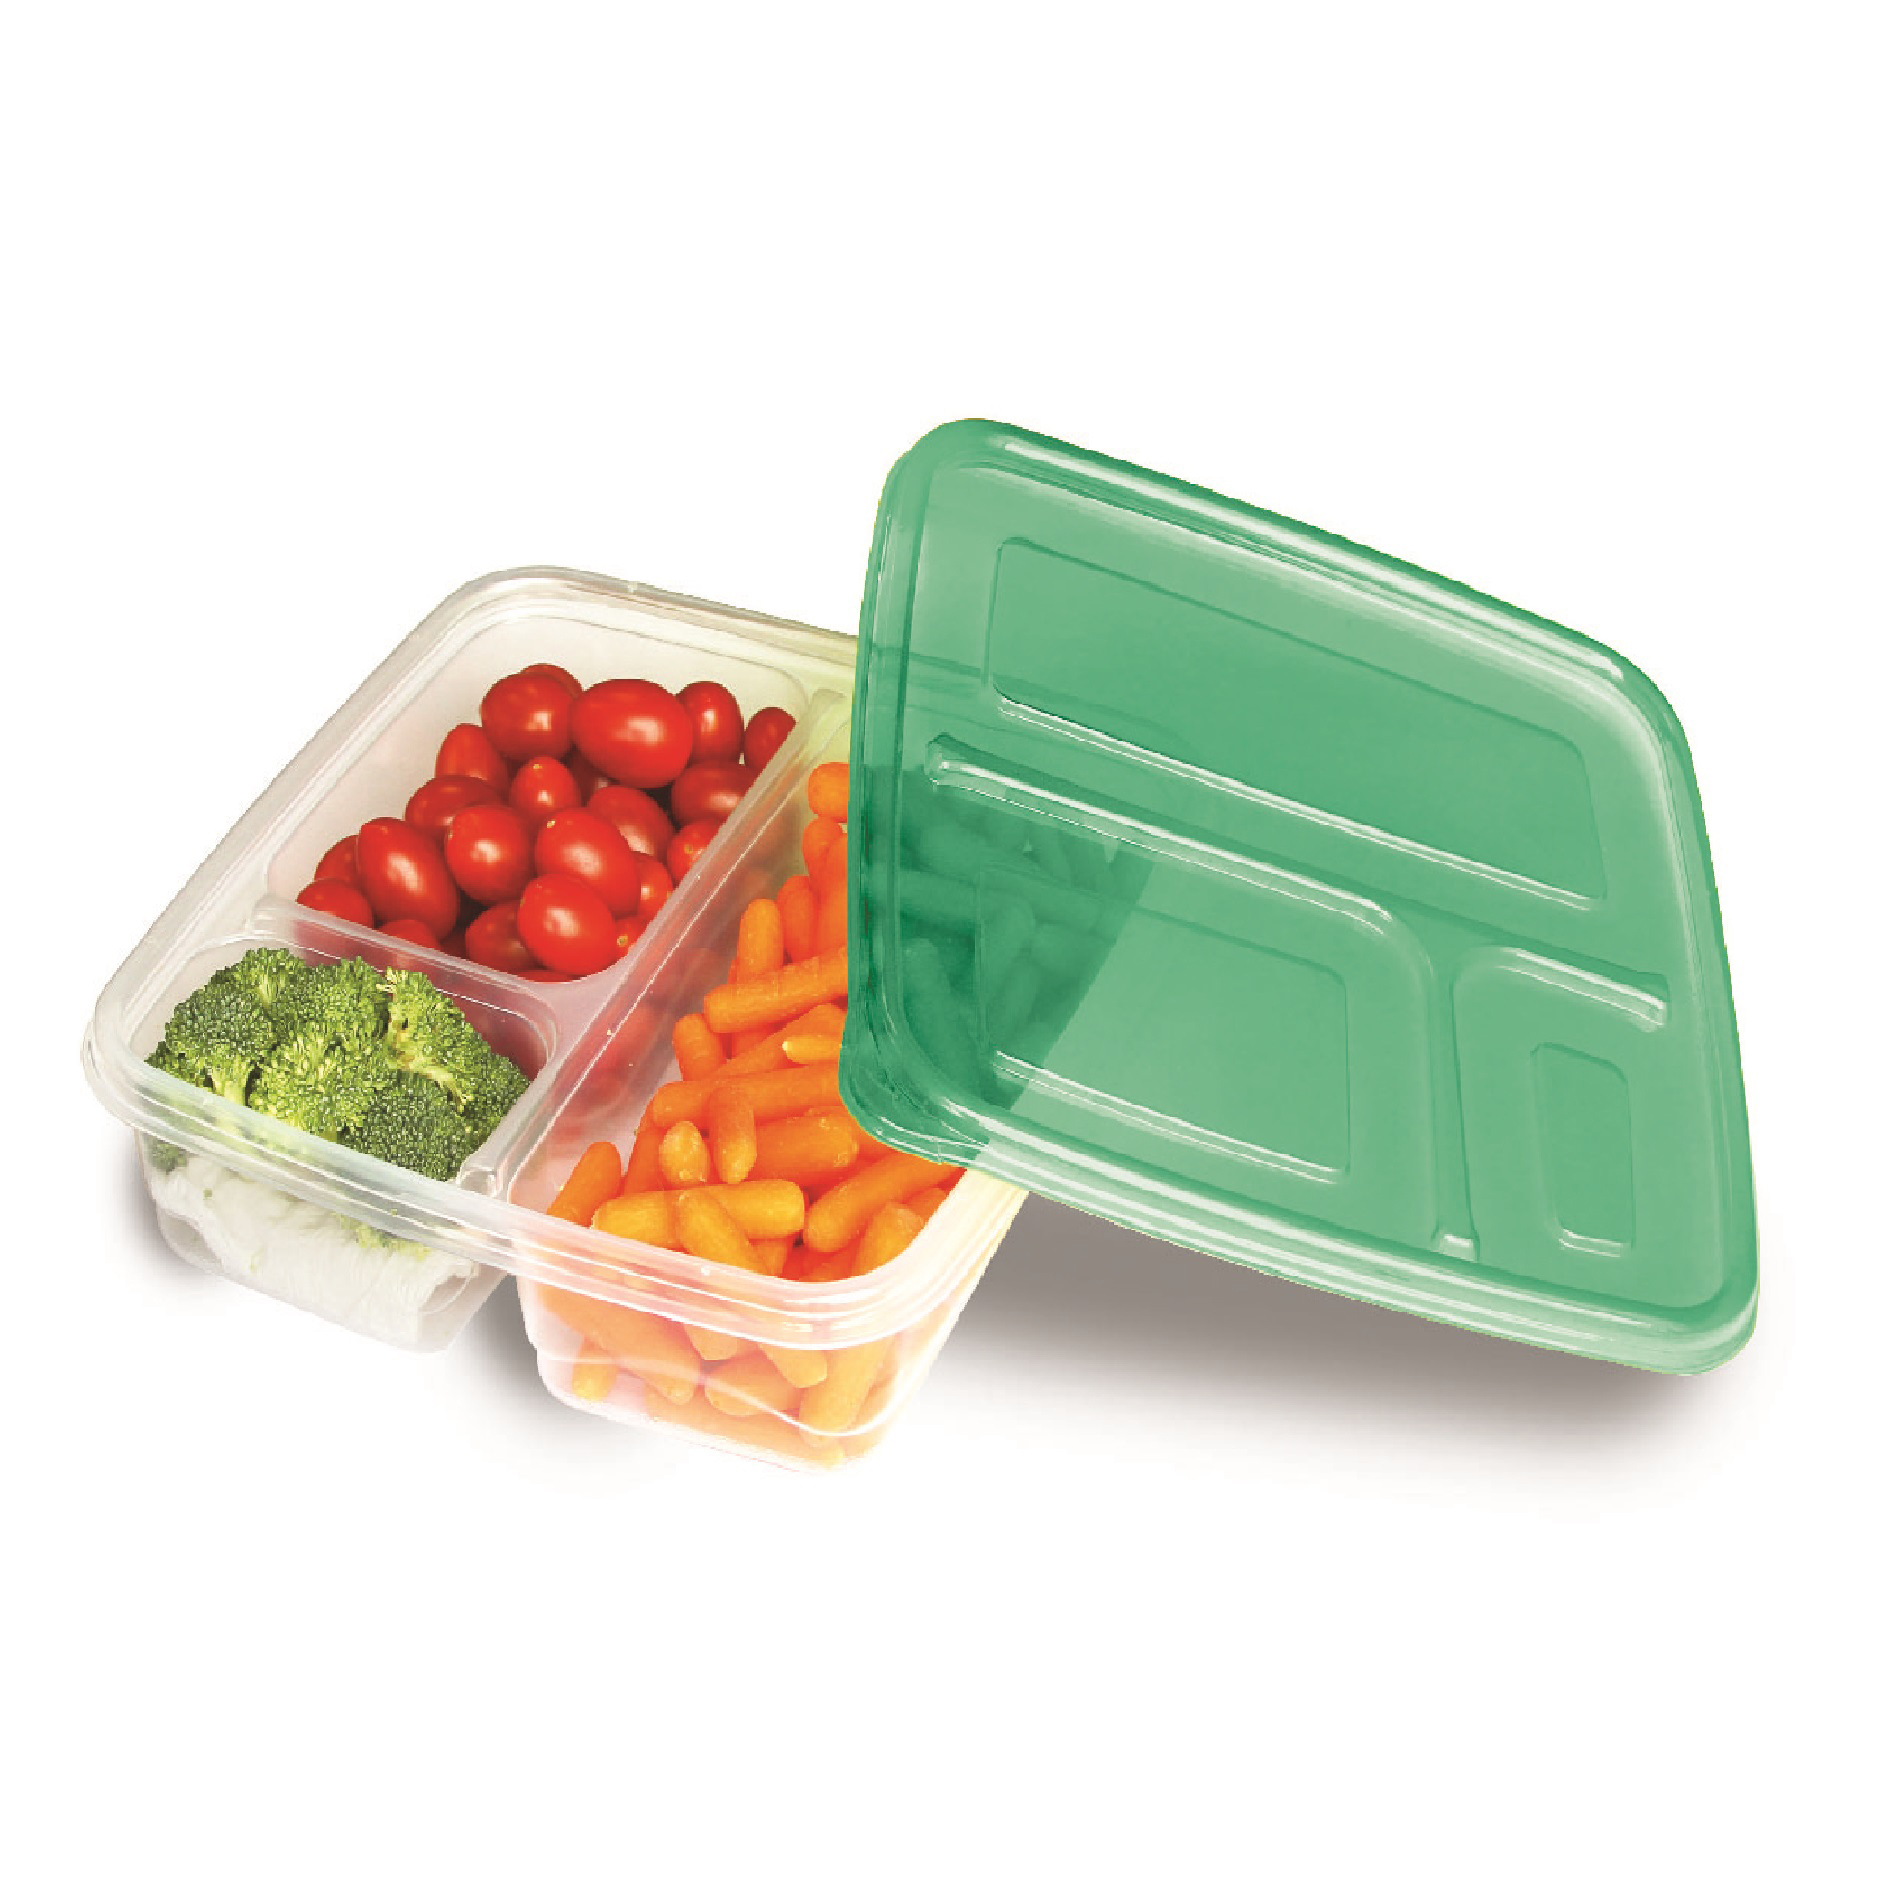 2 Pk Three Compartment Food Storage Container